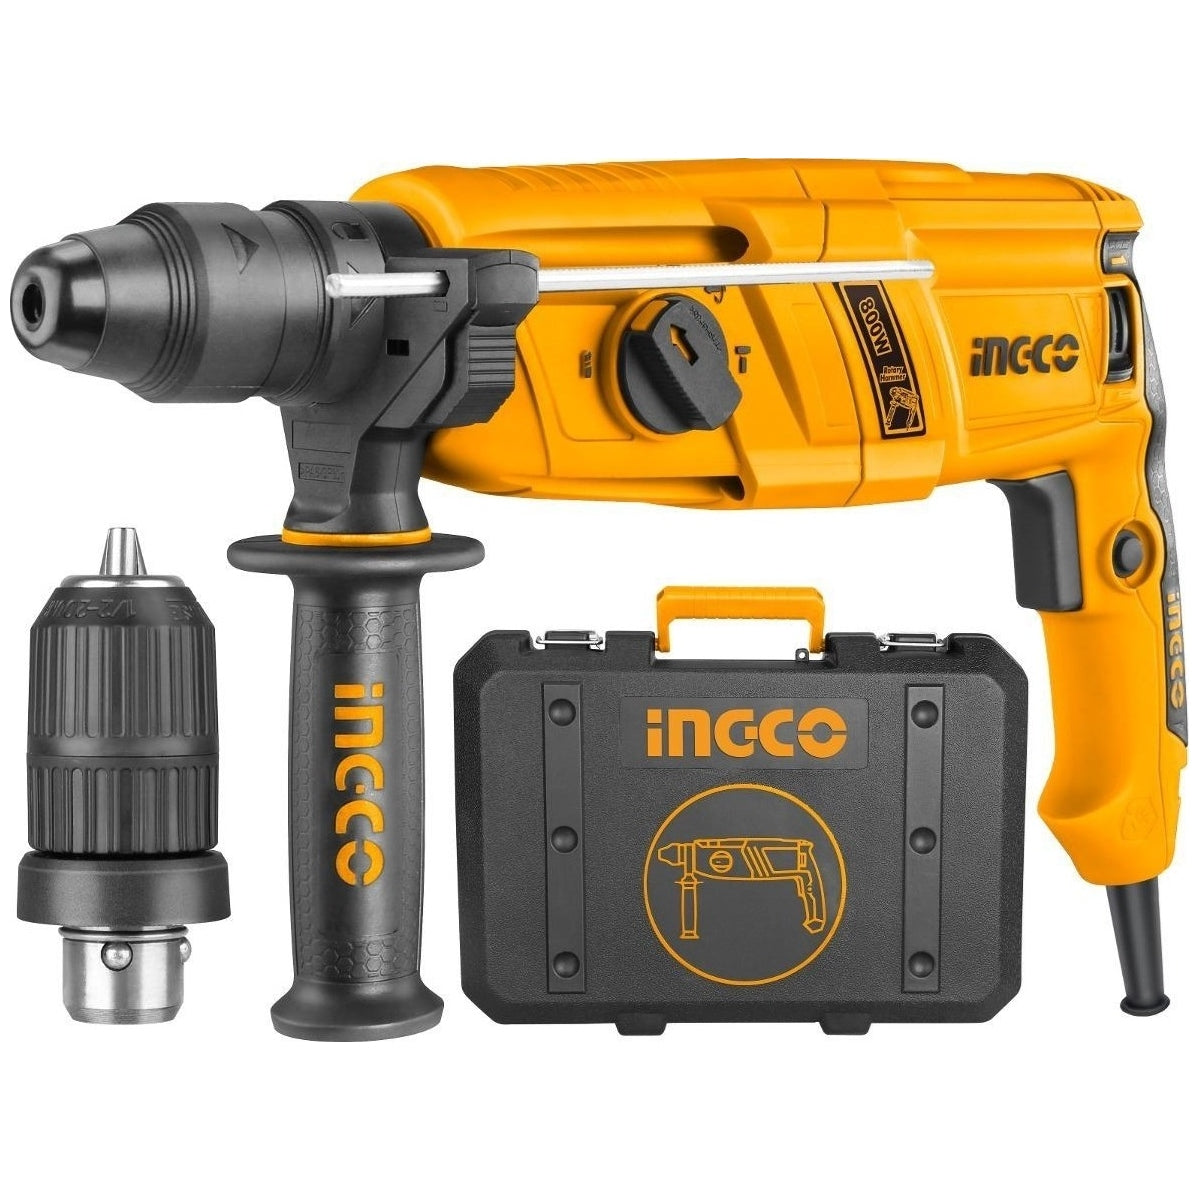 Ingco RGH9018-2 Rotary Hammer Drill 2 Chuck 800W